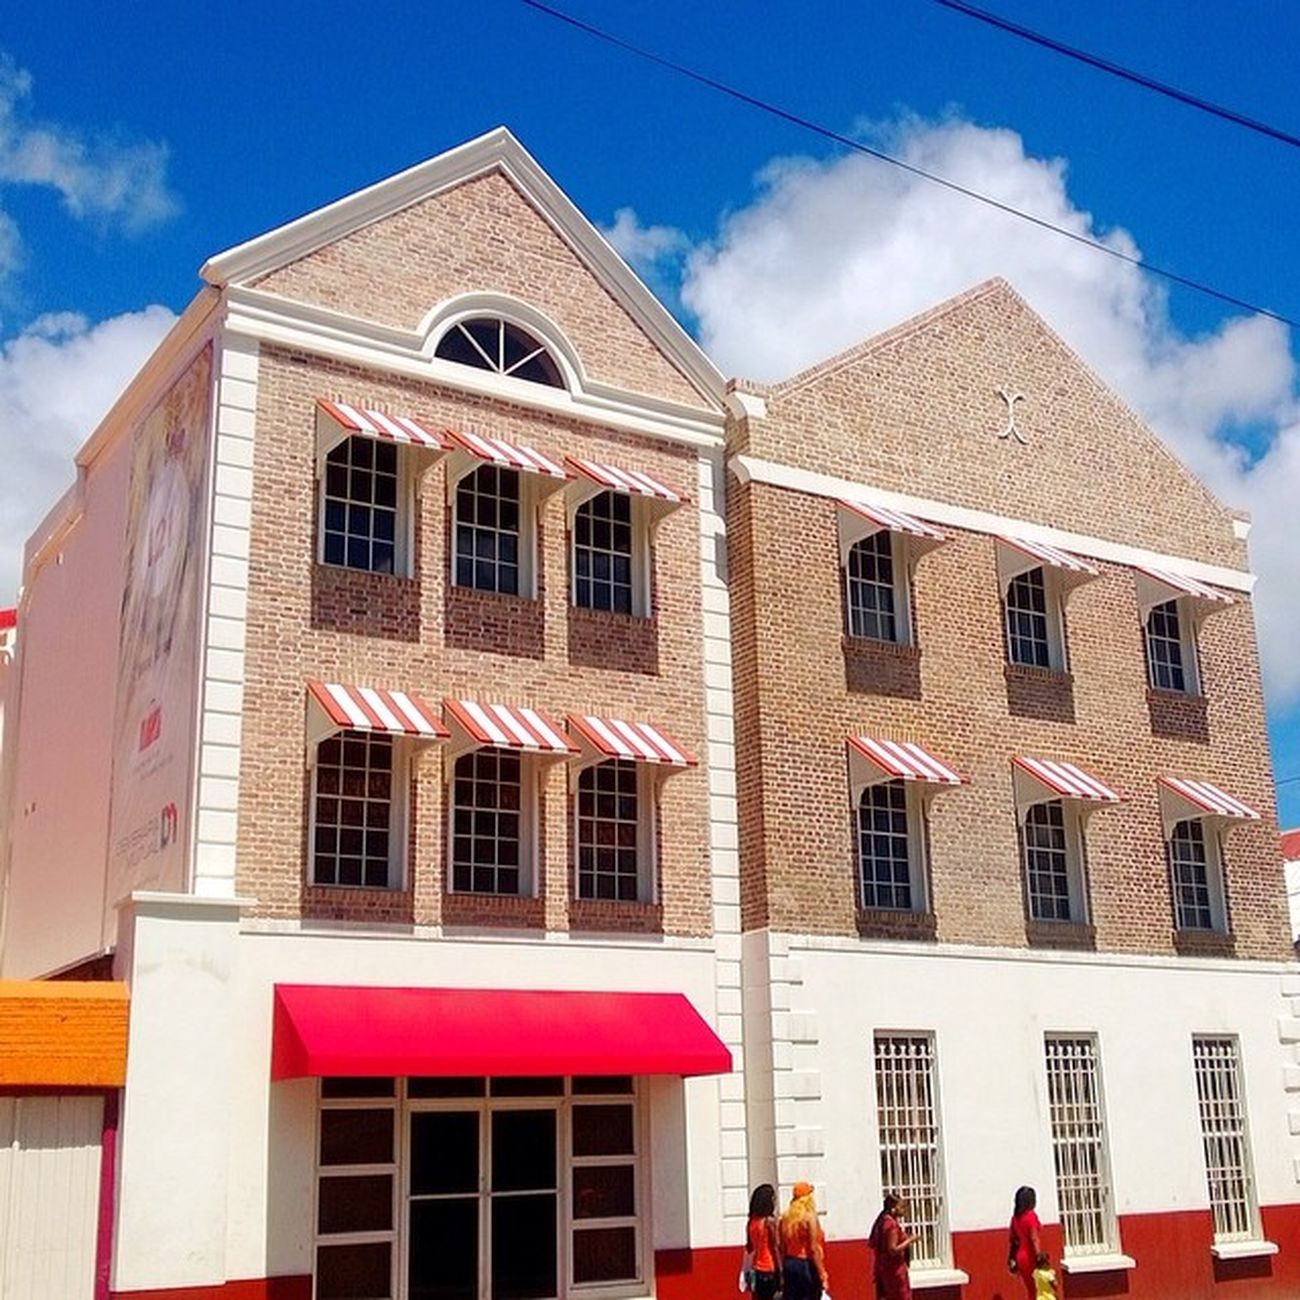 Architecture Allshots_ Awesome Wu_caribbean Westindies_colors Westindies_people Ilivewhereyouvacation Instagram_473 Islandlivity Instapretty Islandlife Iphone5s Instagram Grenada Greenz